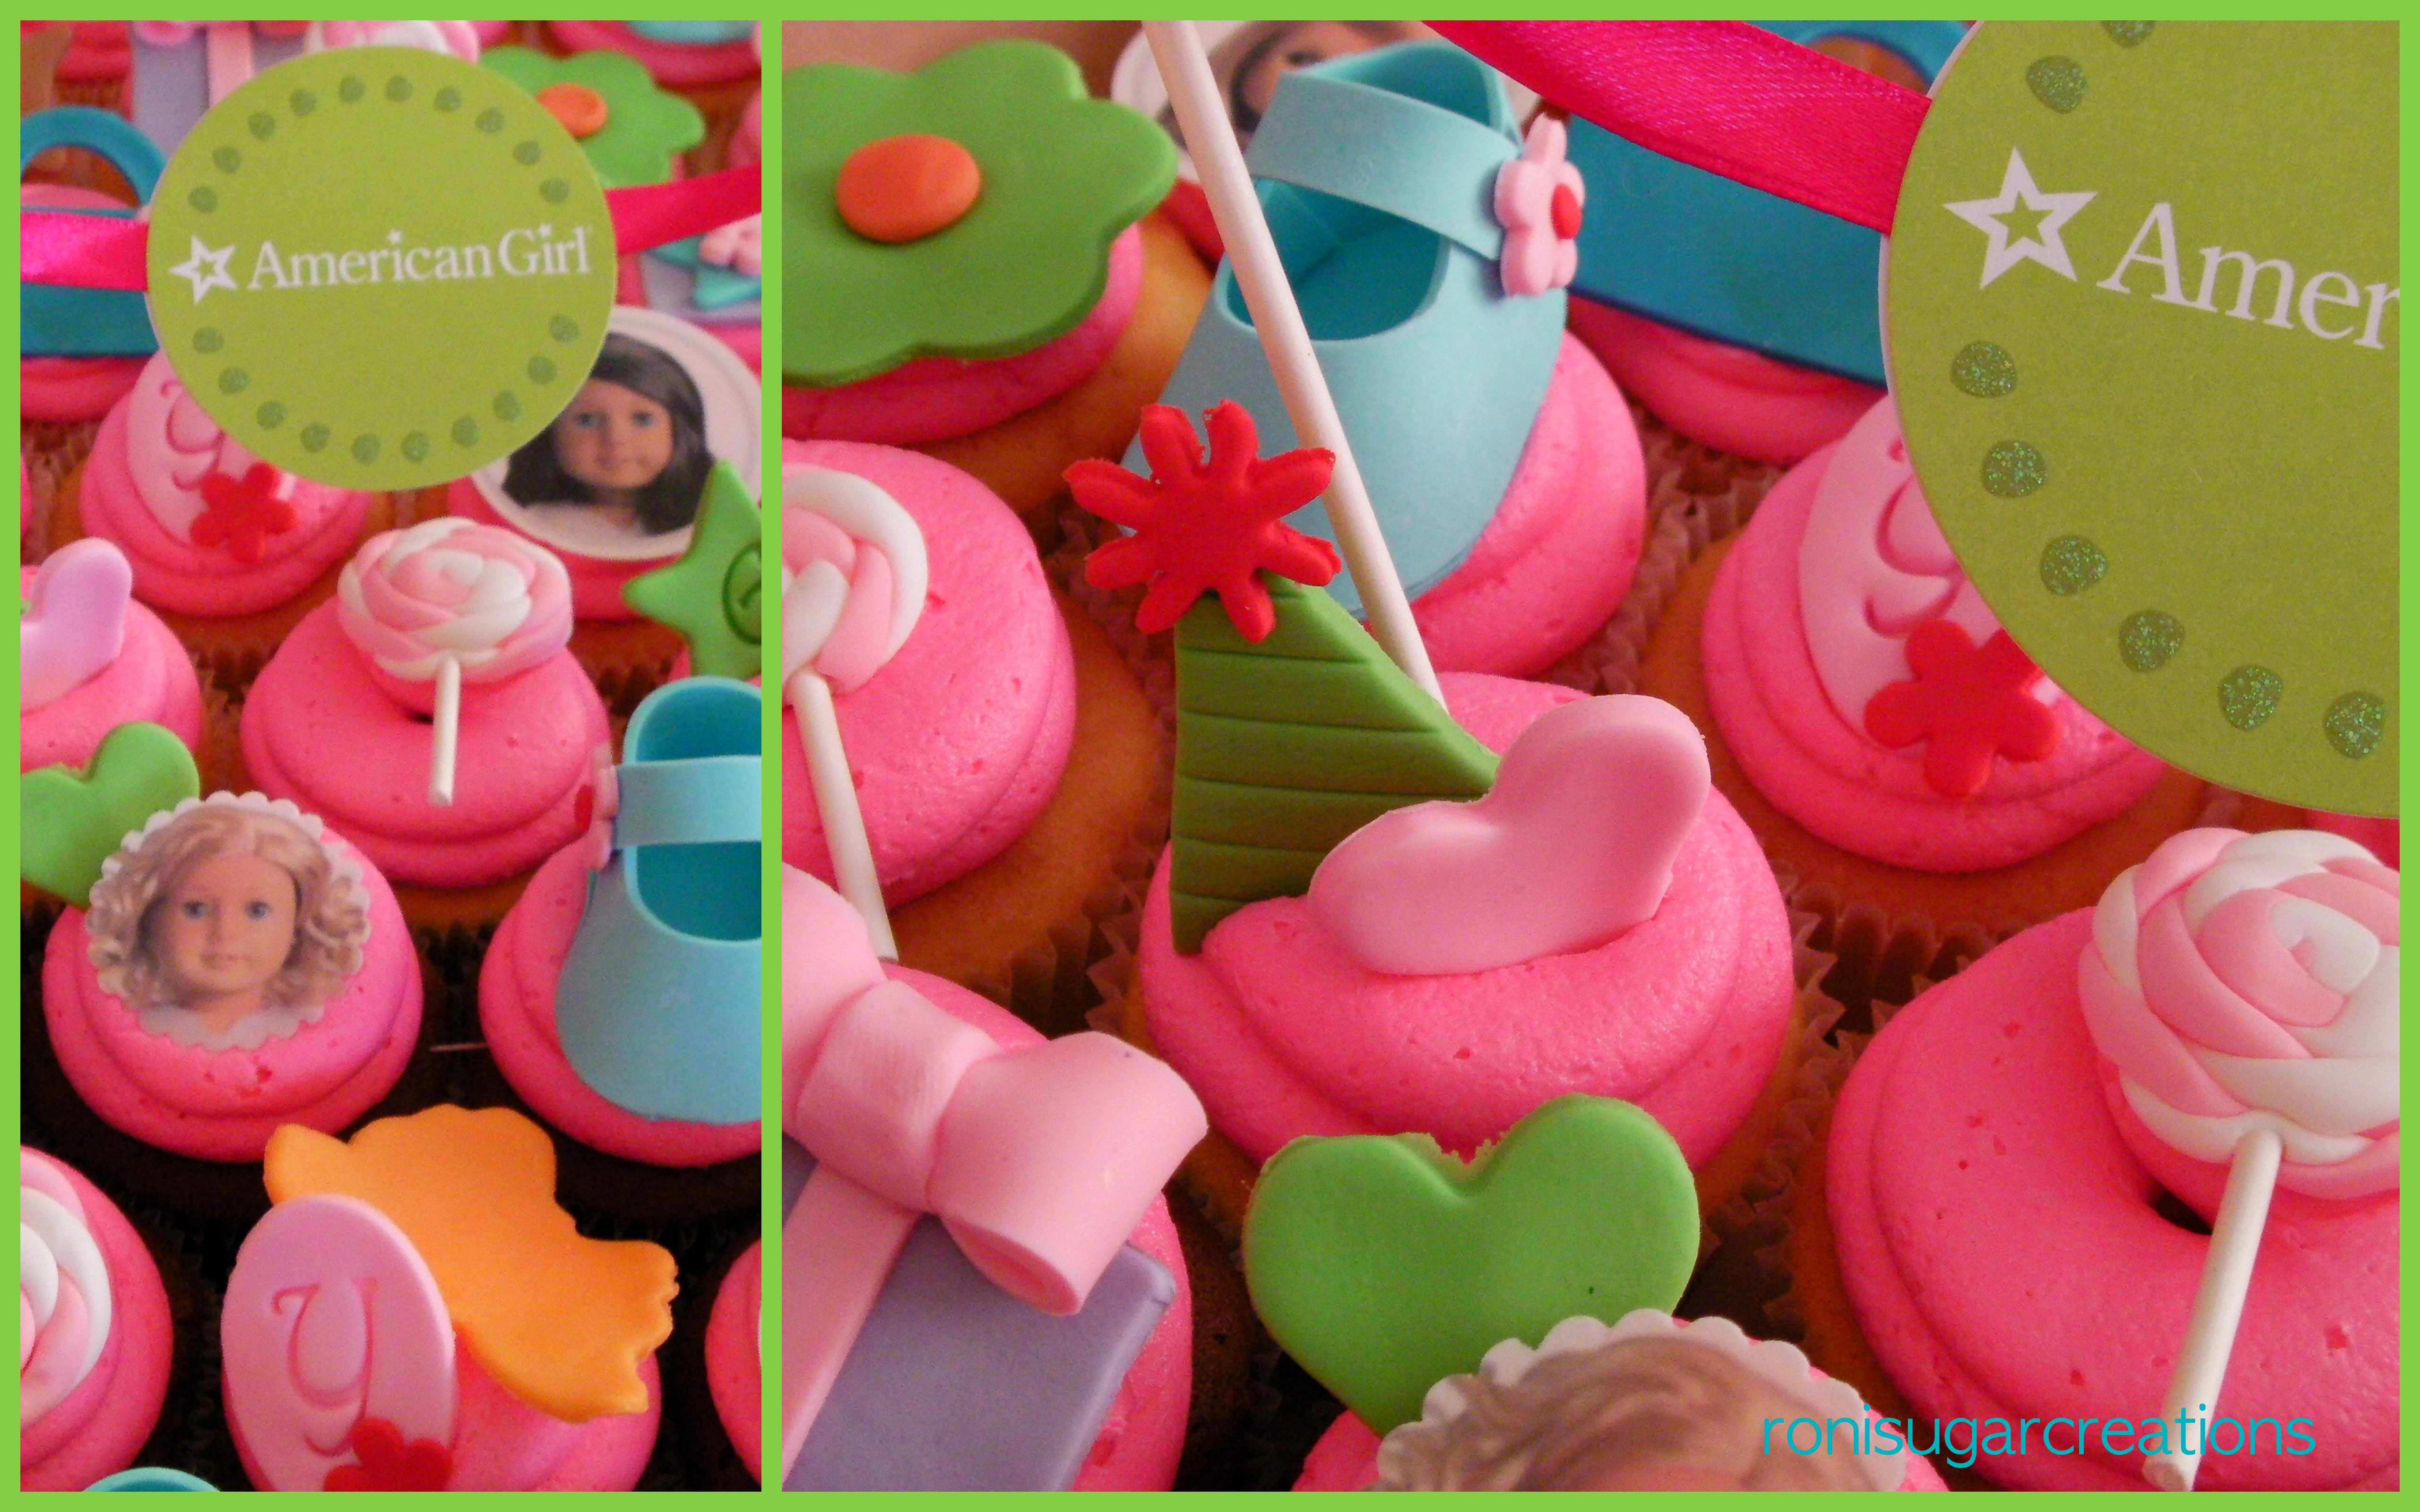 Roni-American Gill doll cupcakes